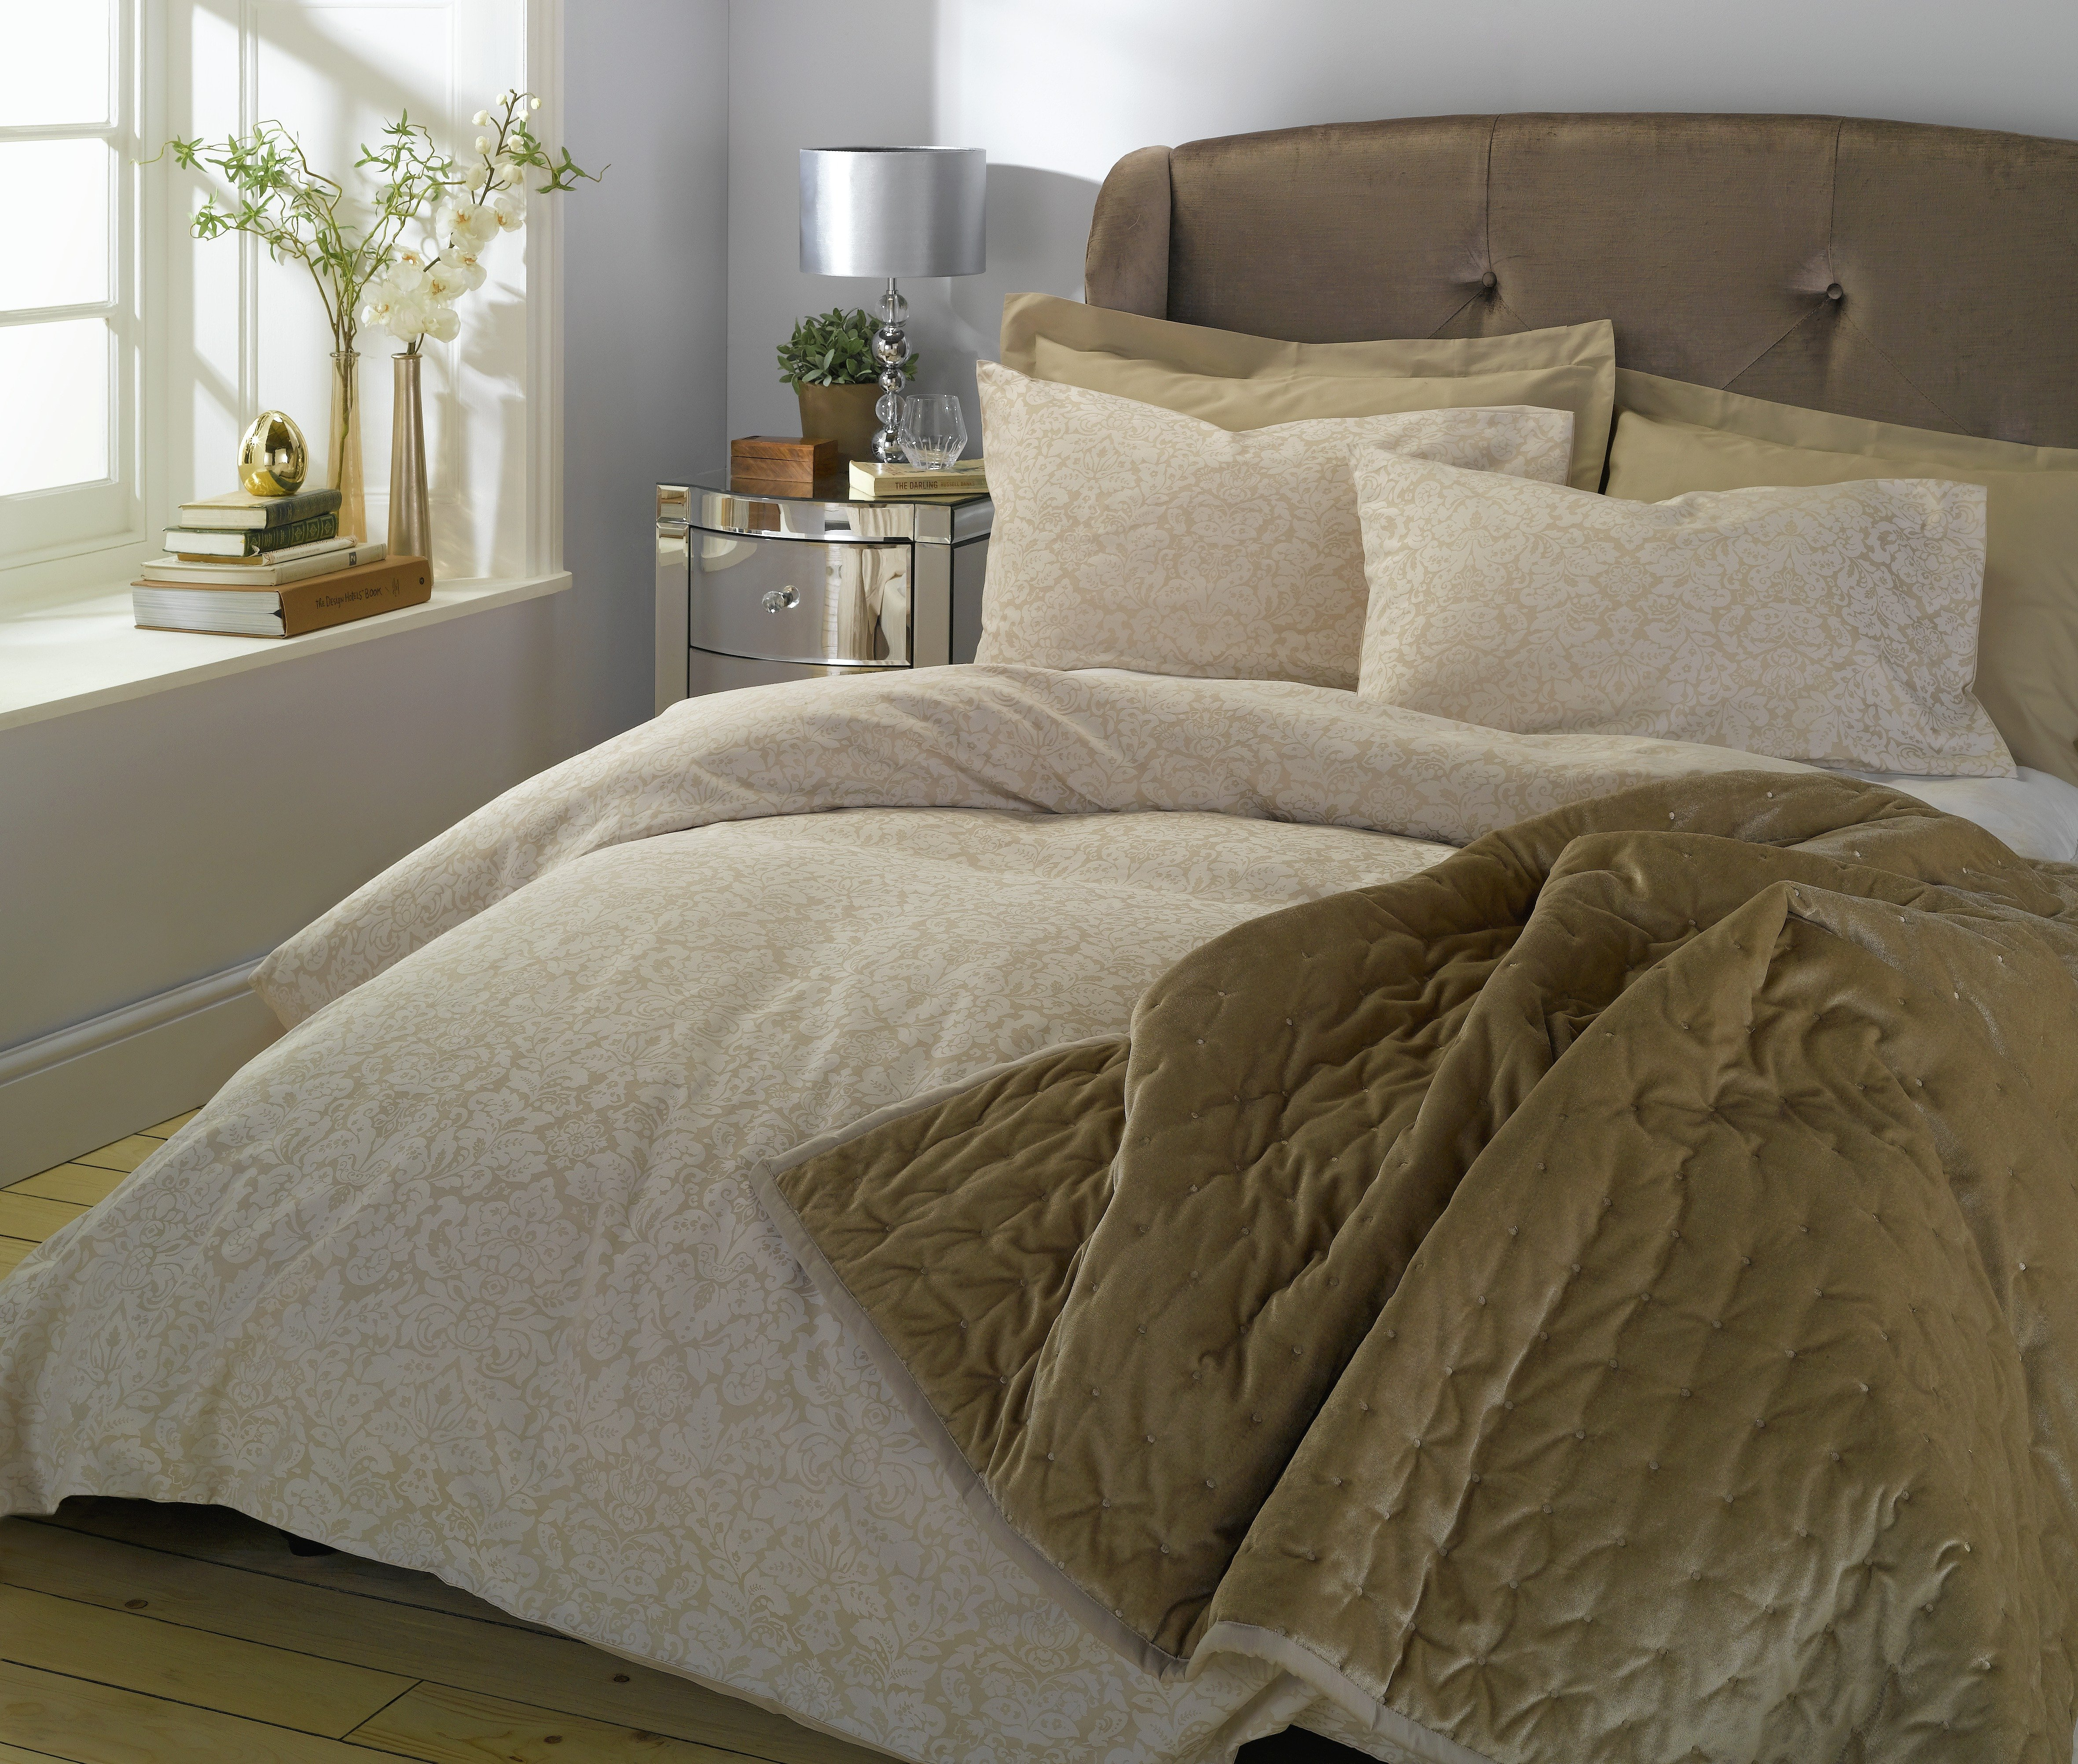 buy heart of house duvet cover sets at your. Black Bedroom Furniture Sets. Home Design Ideas